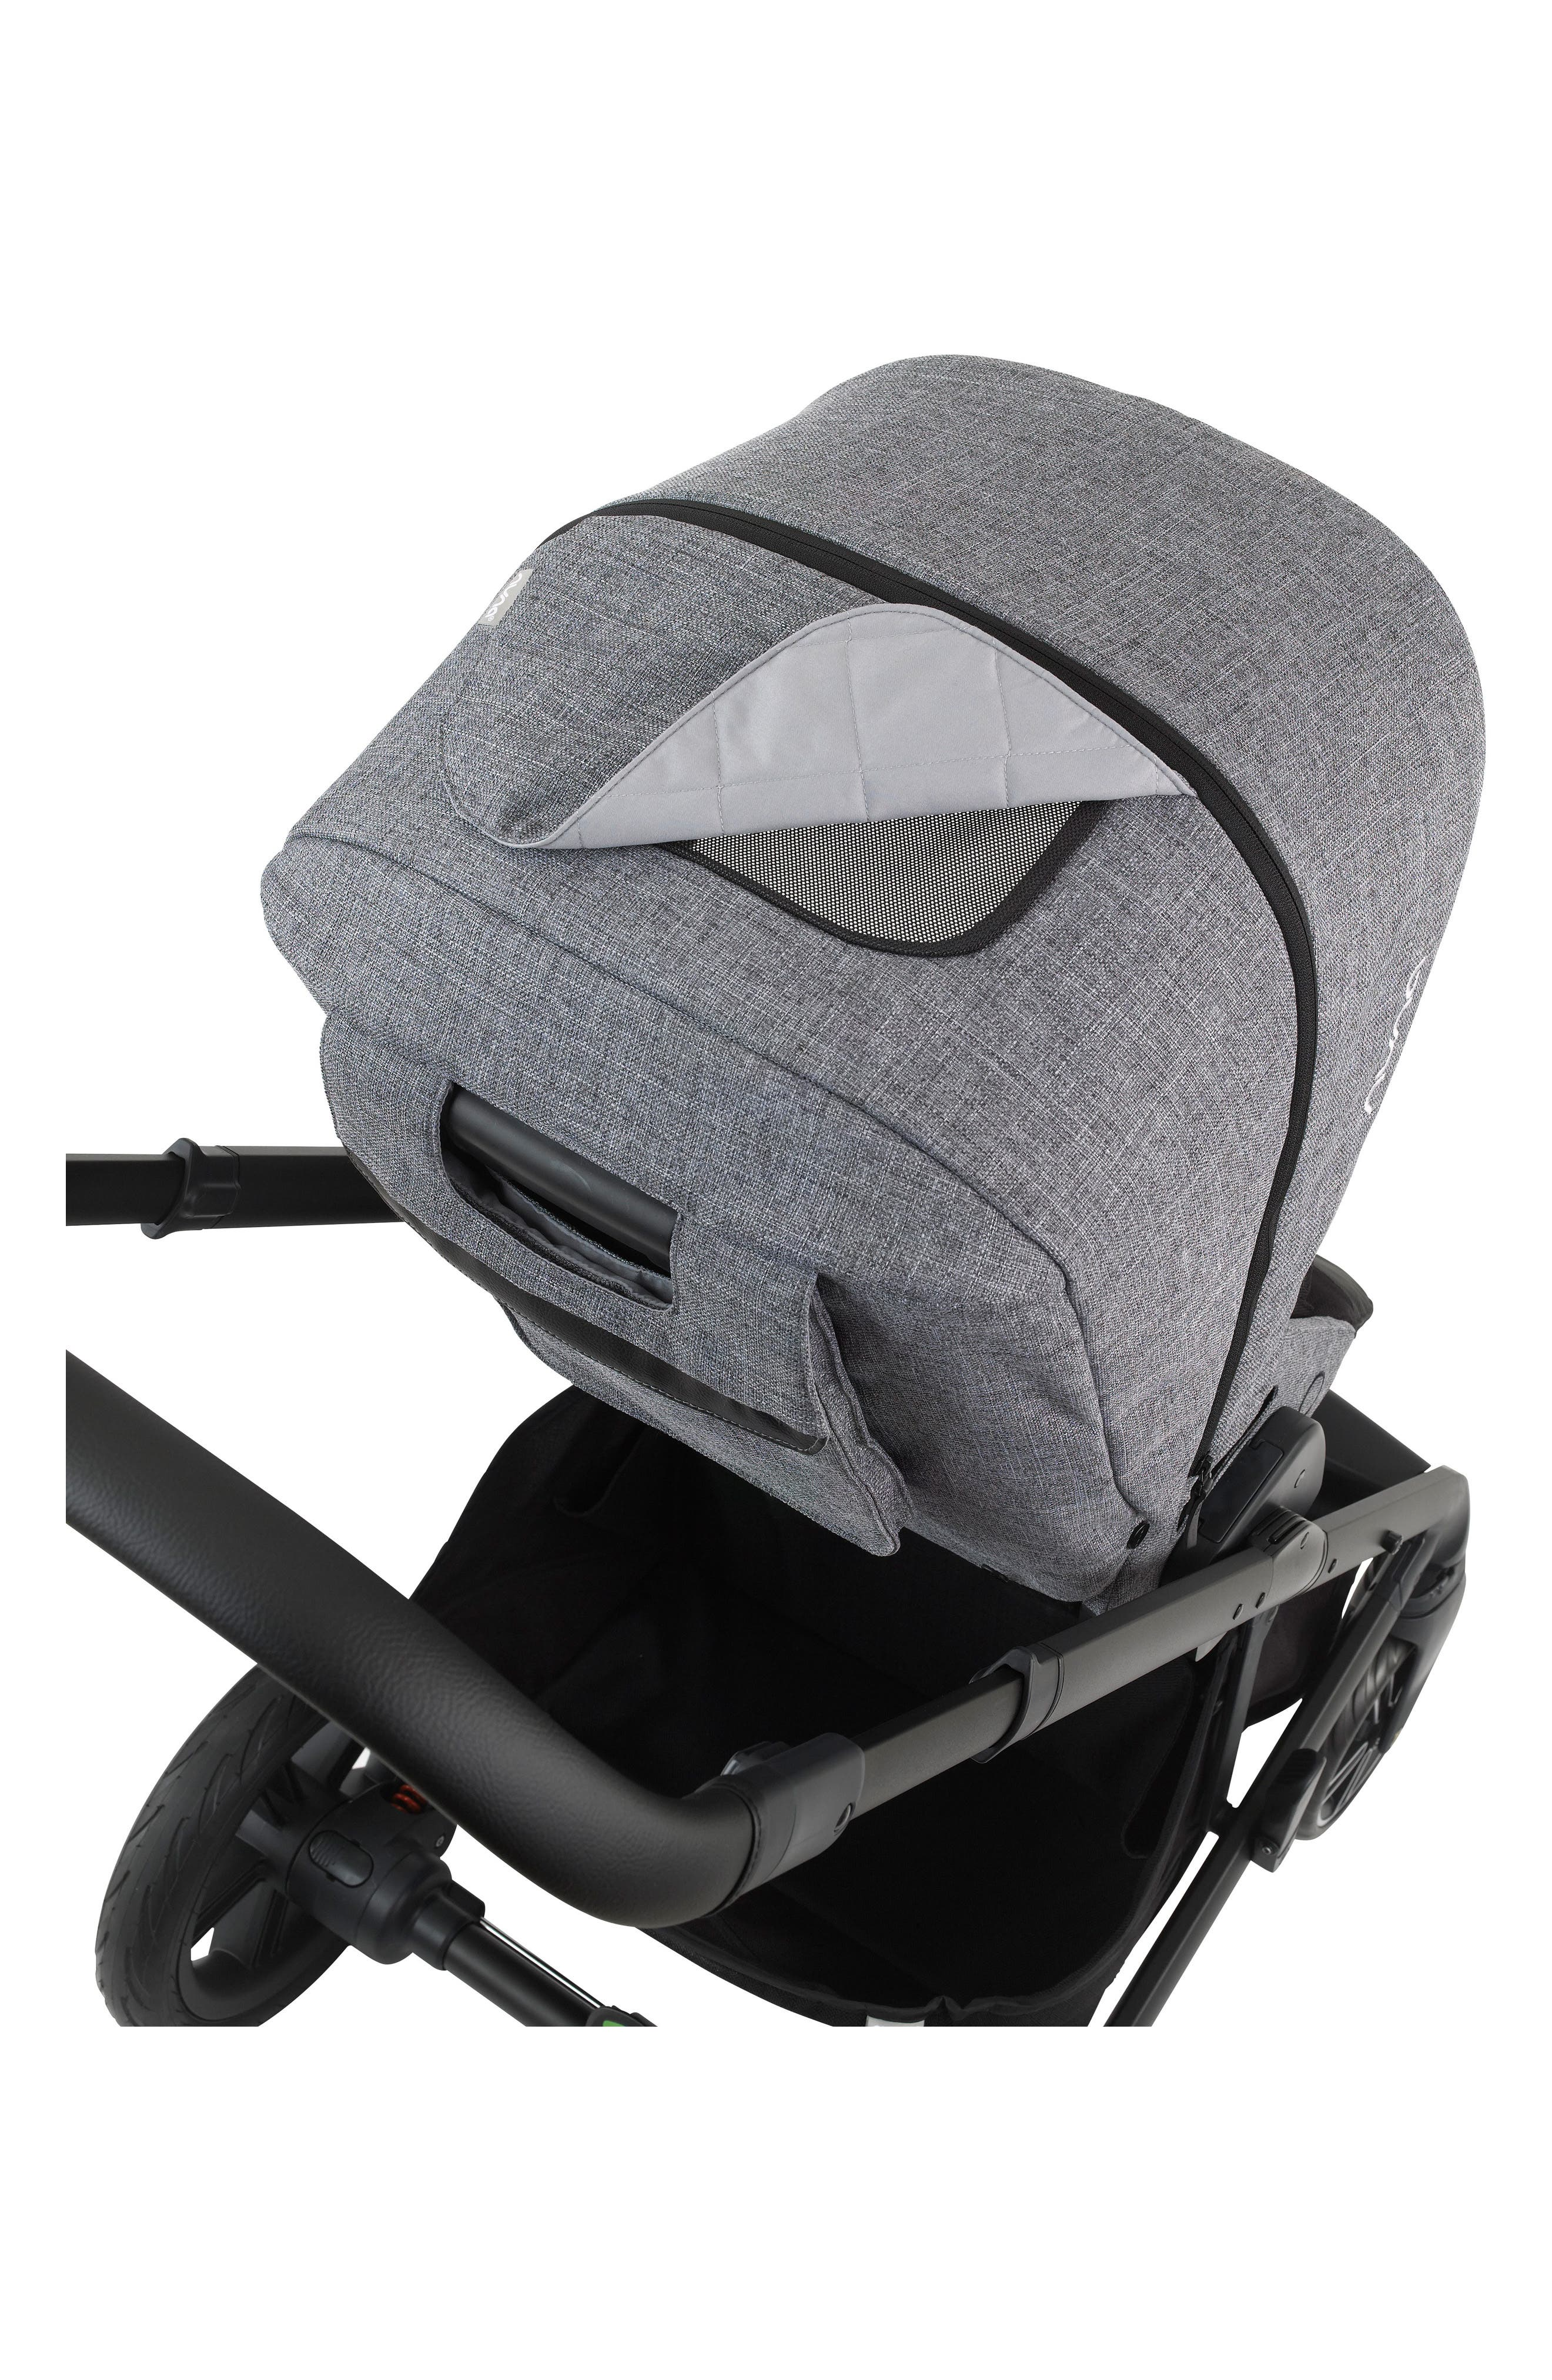 MIXX<sup>™</sup> 2 Stroller System & PIPA<sup>™</sup> Car Seat Set,                             Alternate thumbnail 3, color,                             020